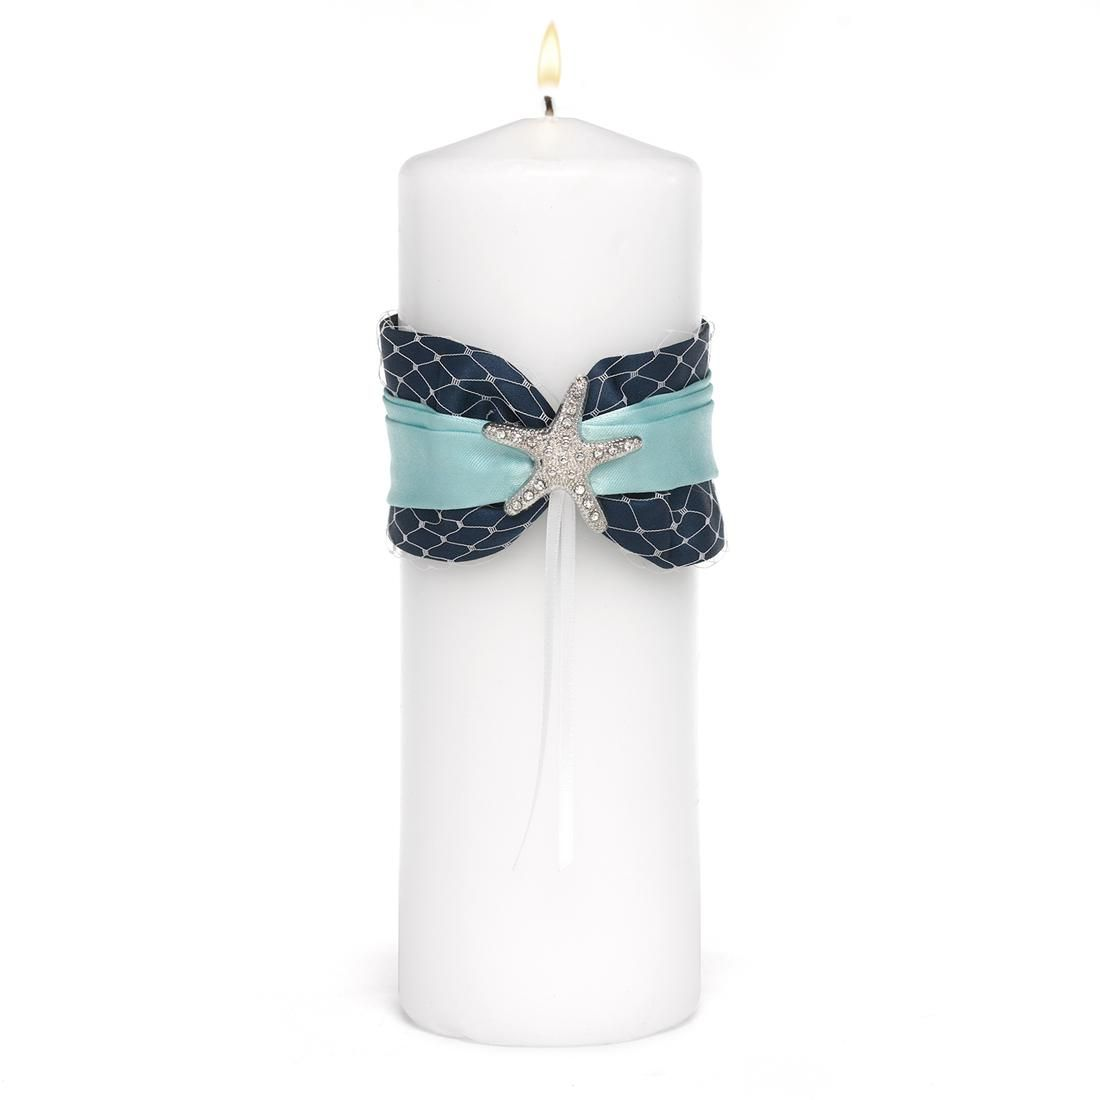 Beach wedding sand ceremony sets  Treasures from the Sea Wedding Unity Candle made of solid white wax